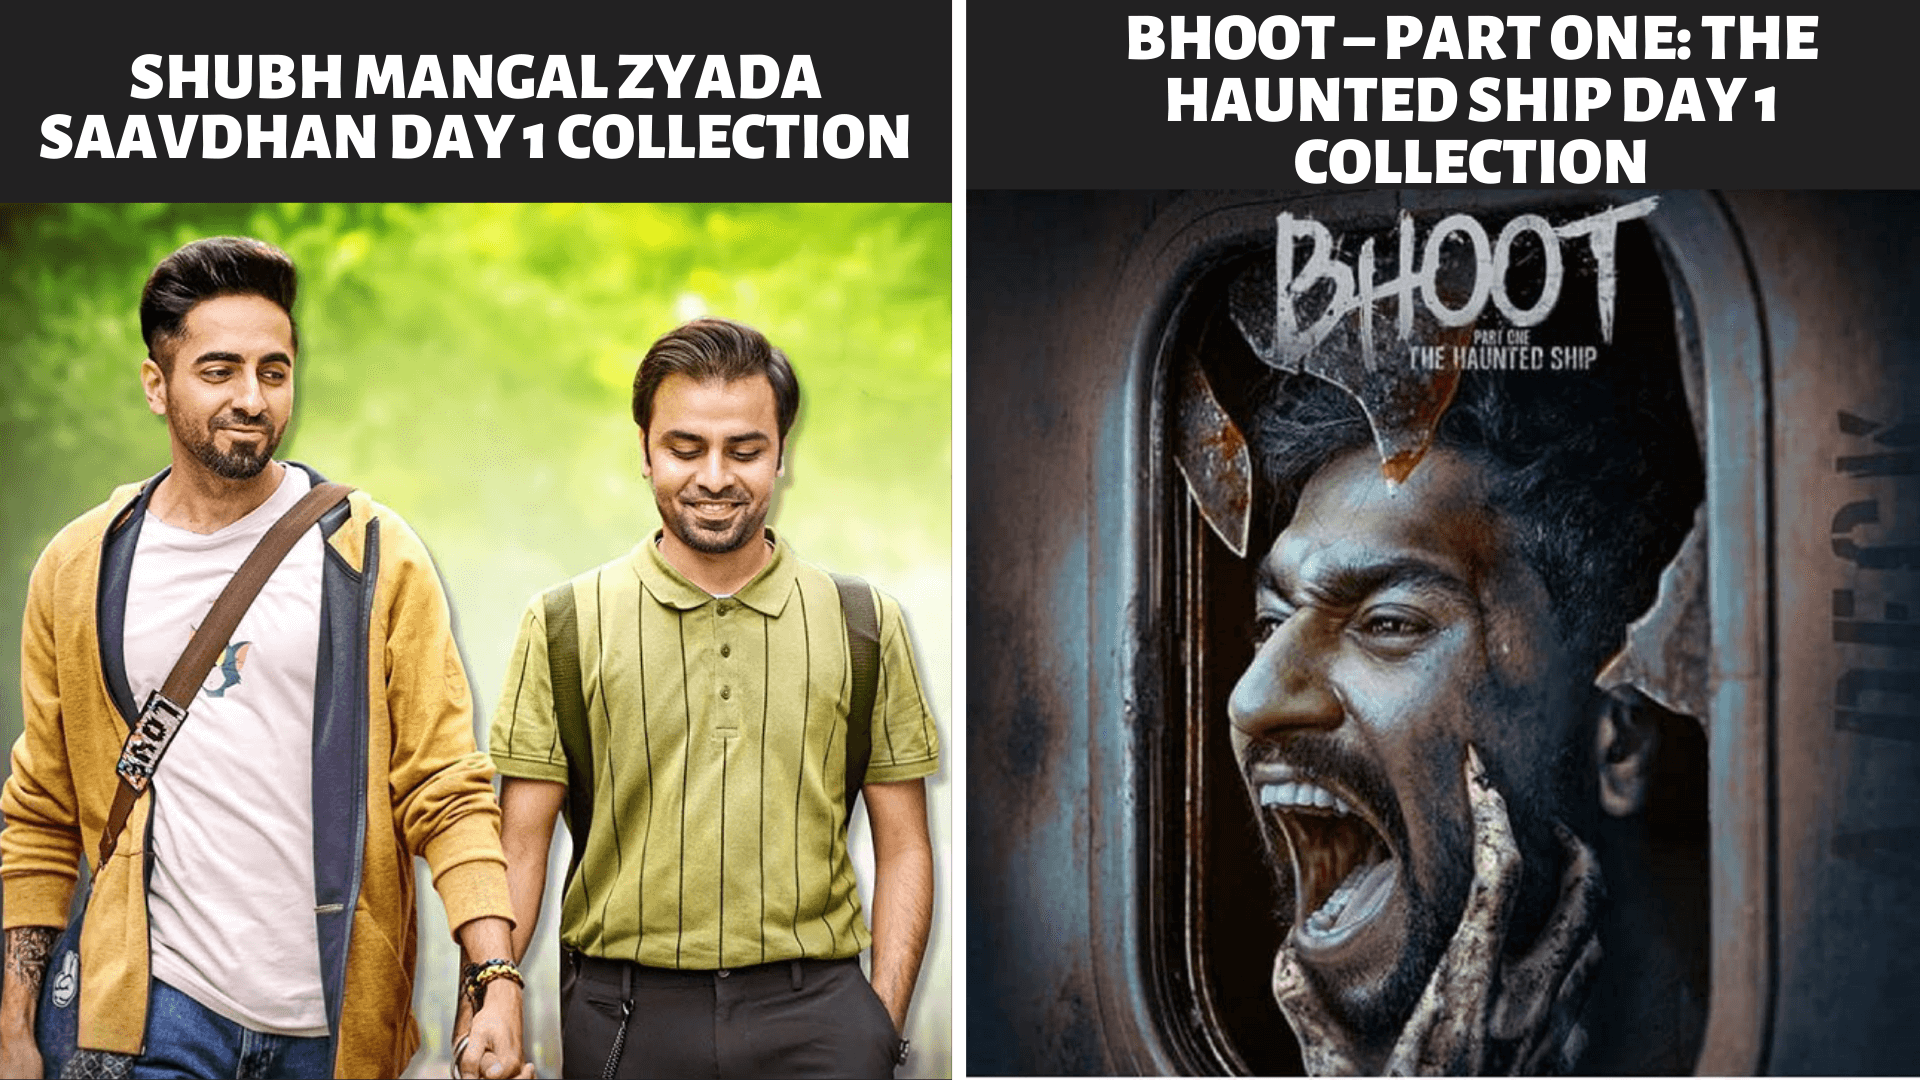 Shubh Mangal Zyada Saavdhan Day 1 Collection vs Bhoot – Part One The Haunted Ship Day 1 Collection – Box Office Collections Comparison Ayushmann Khurrana, Vicky Kaushal